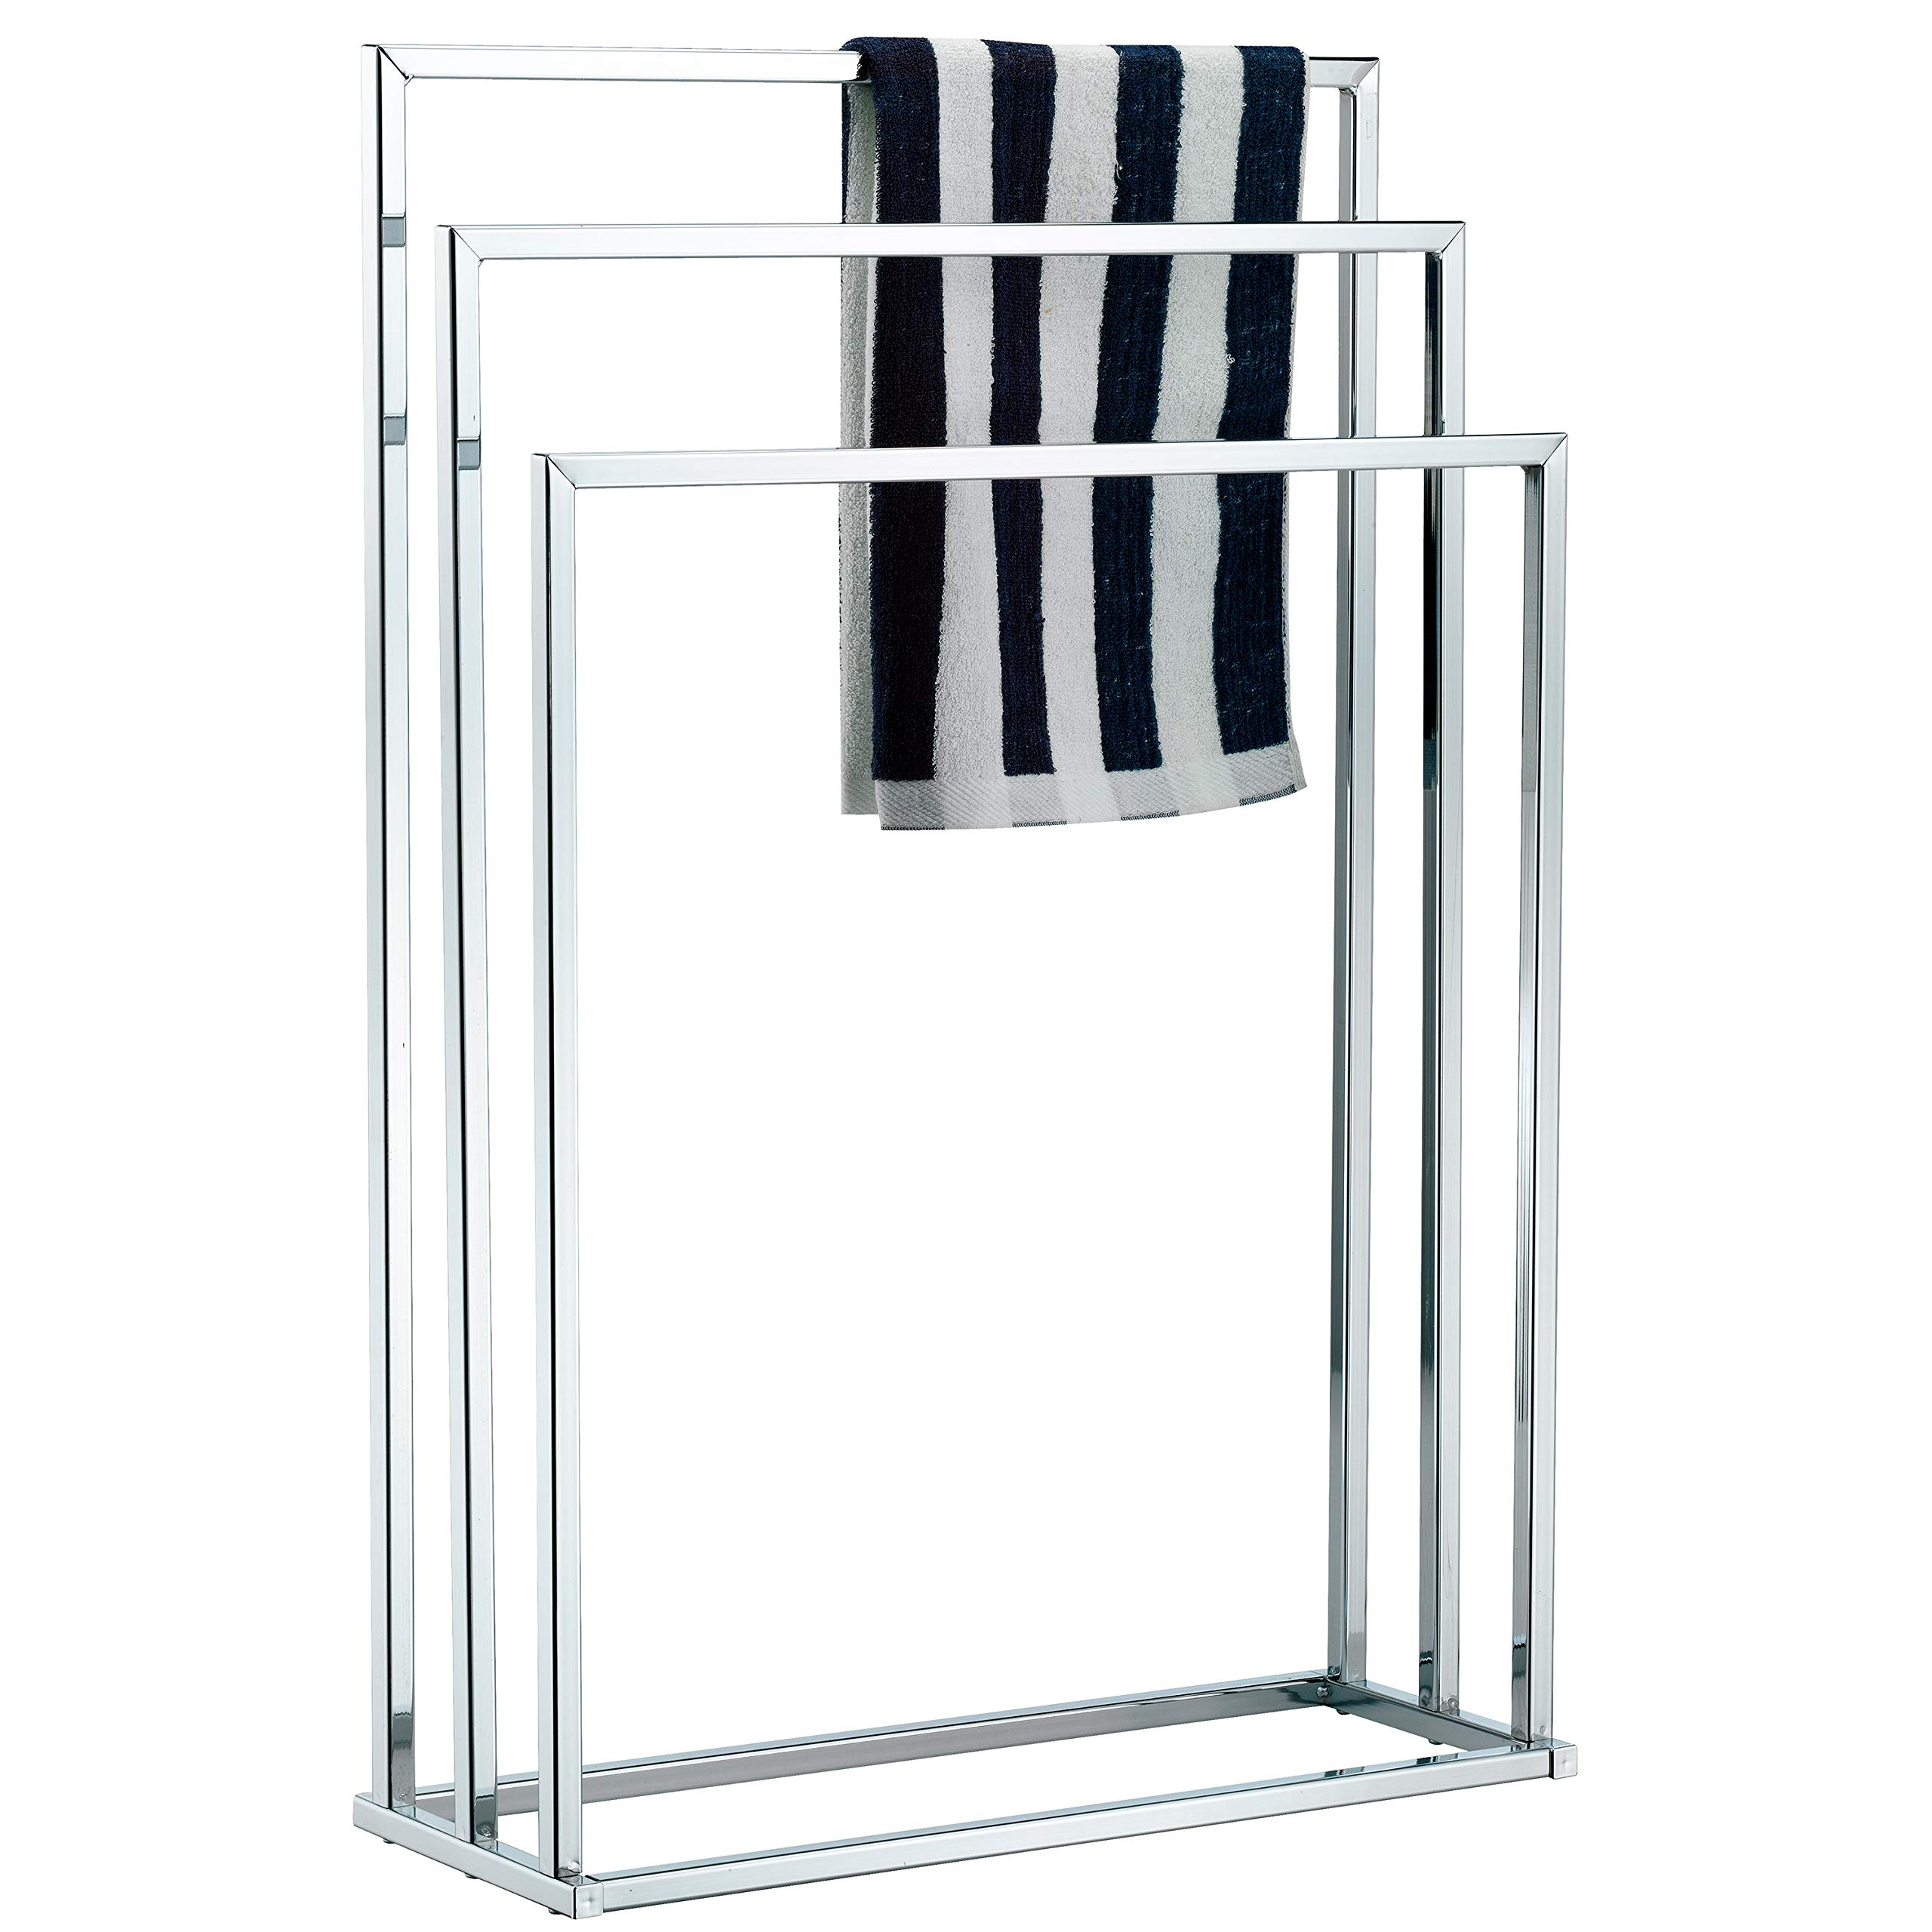 MyGift Freestanding Towel Rack, 3 Tier Metal Towel Bar Stand, Silver-Tone Chrome Plated by MyGift